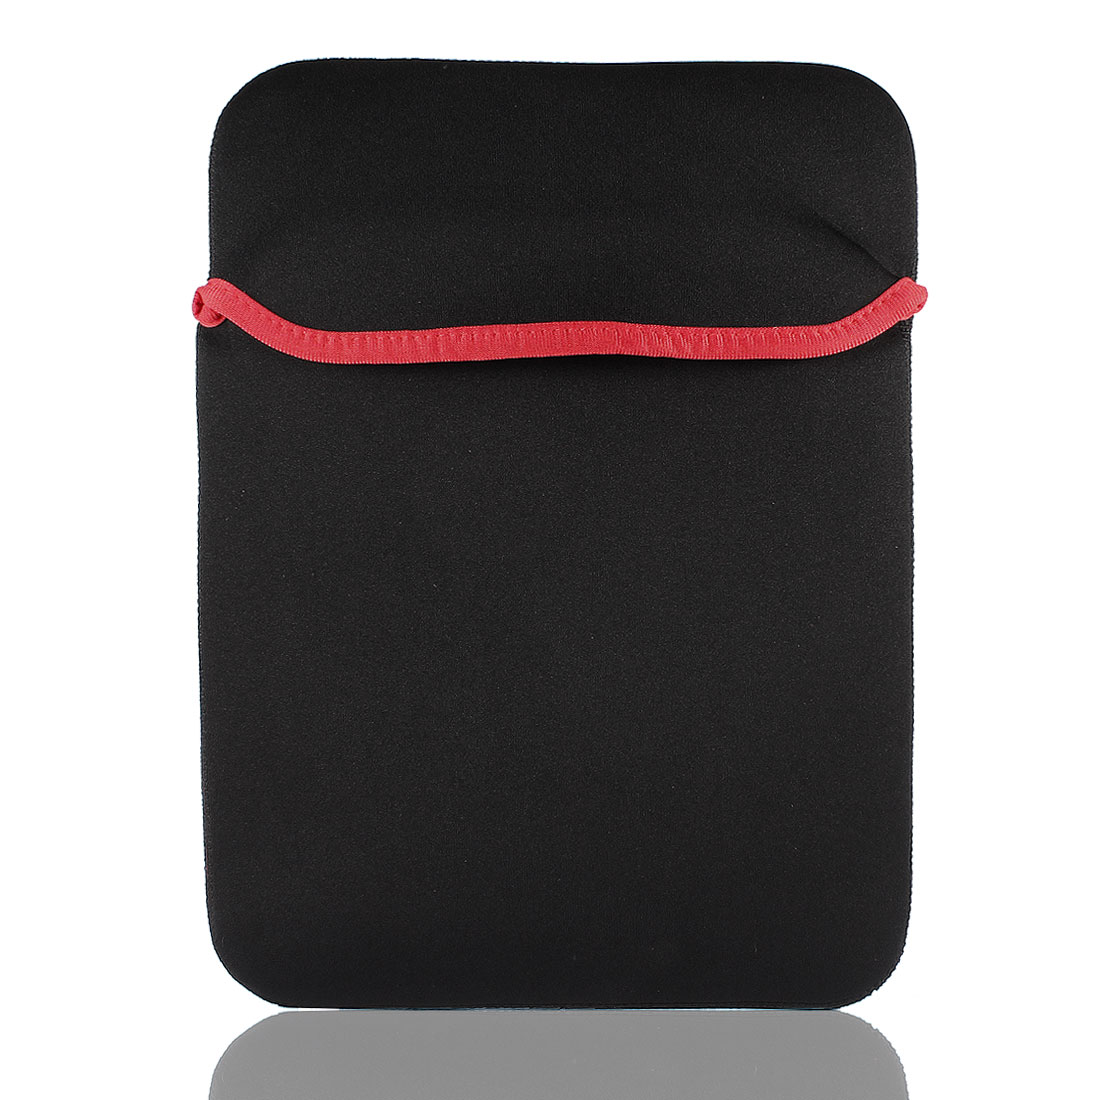 "13"" 13.3"" Black Neoprene Laptop Sleeve Bag Carrying Case for Macbook Pro/Air"